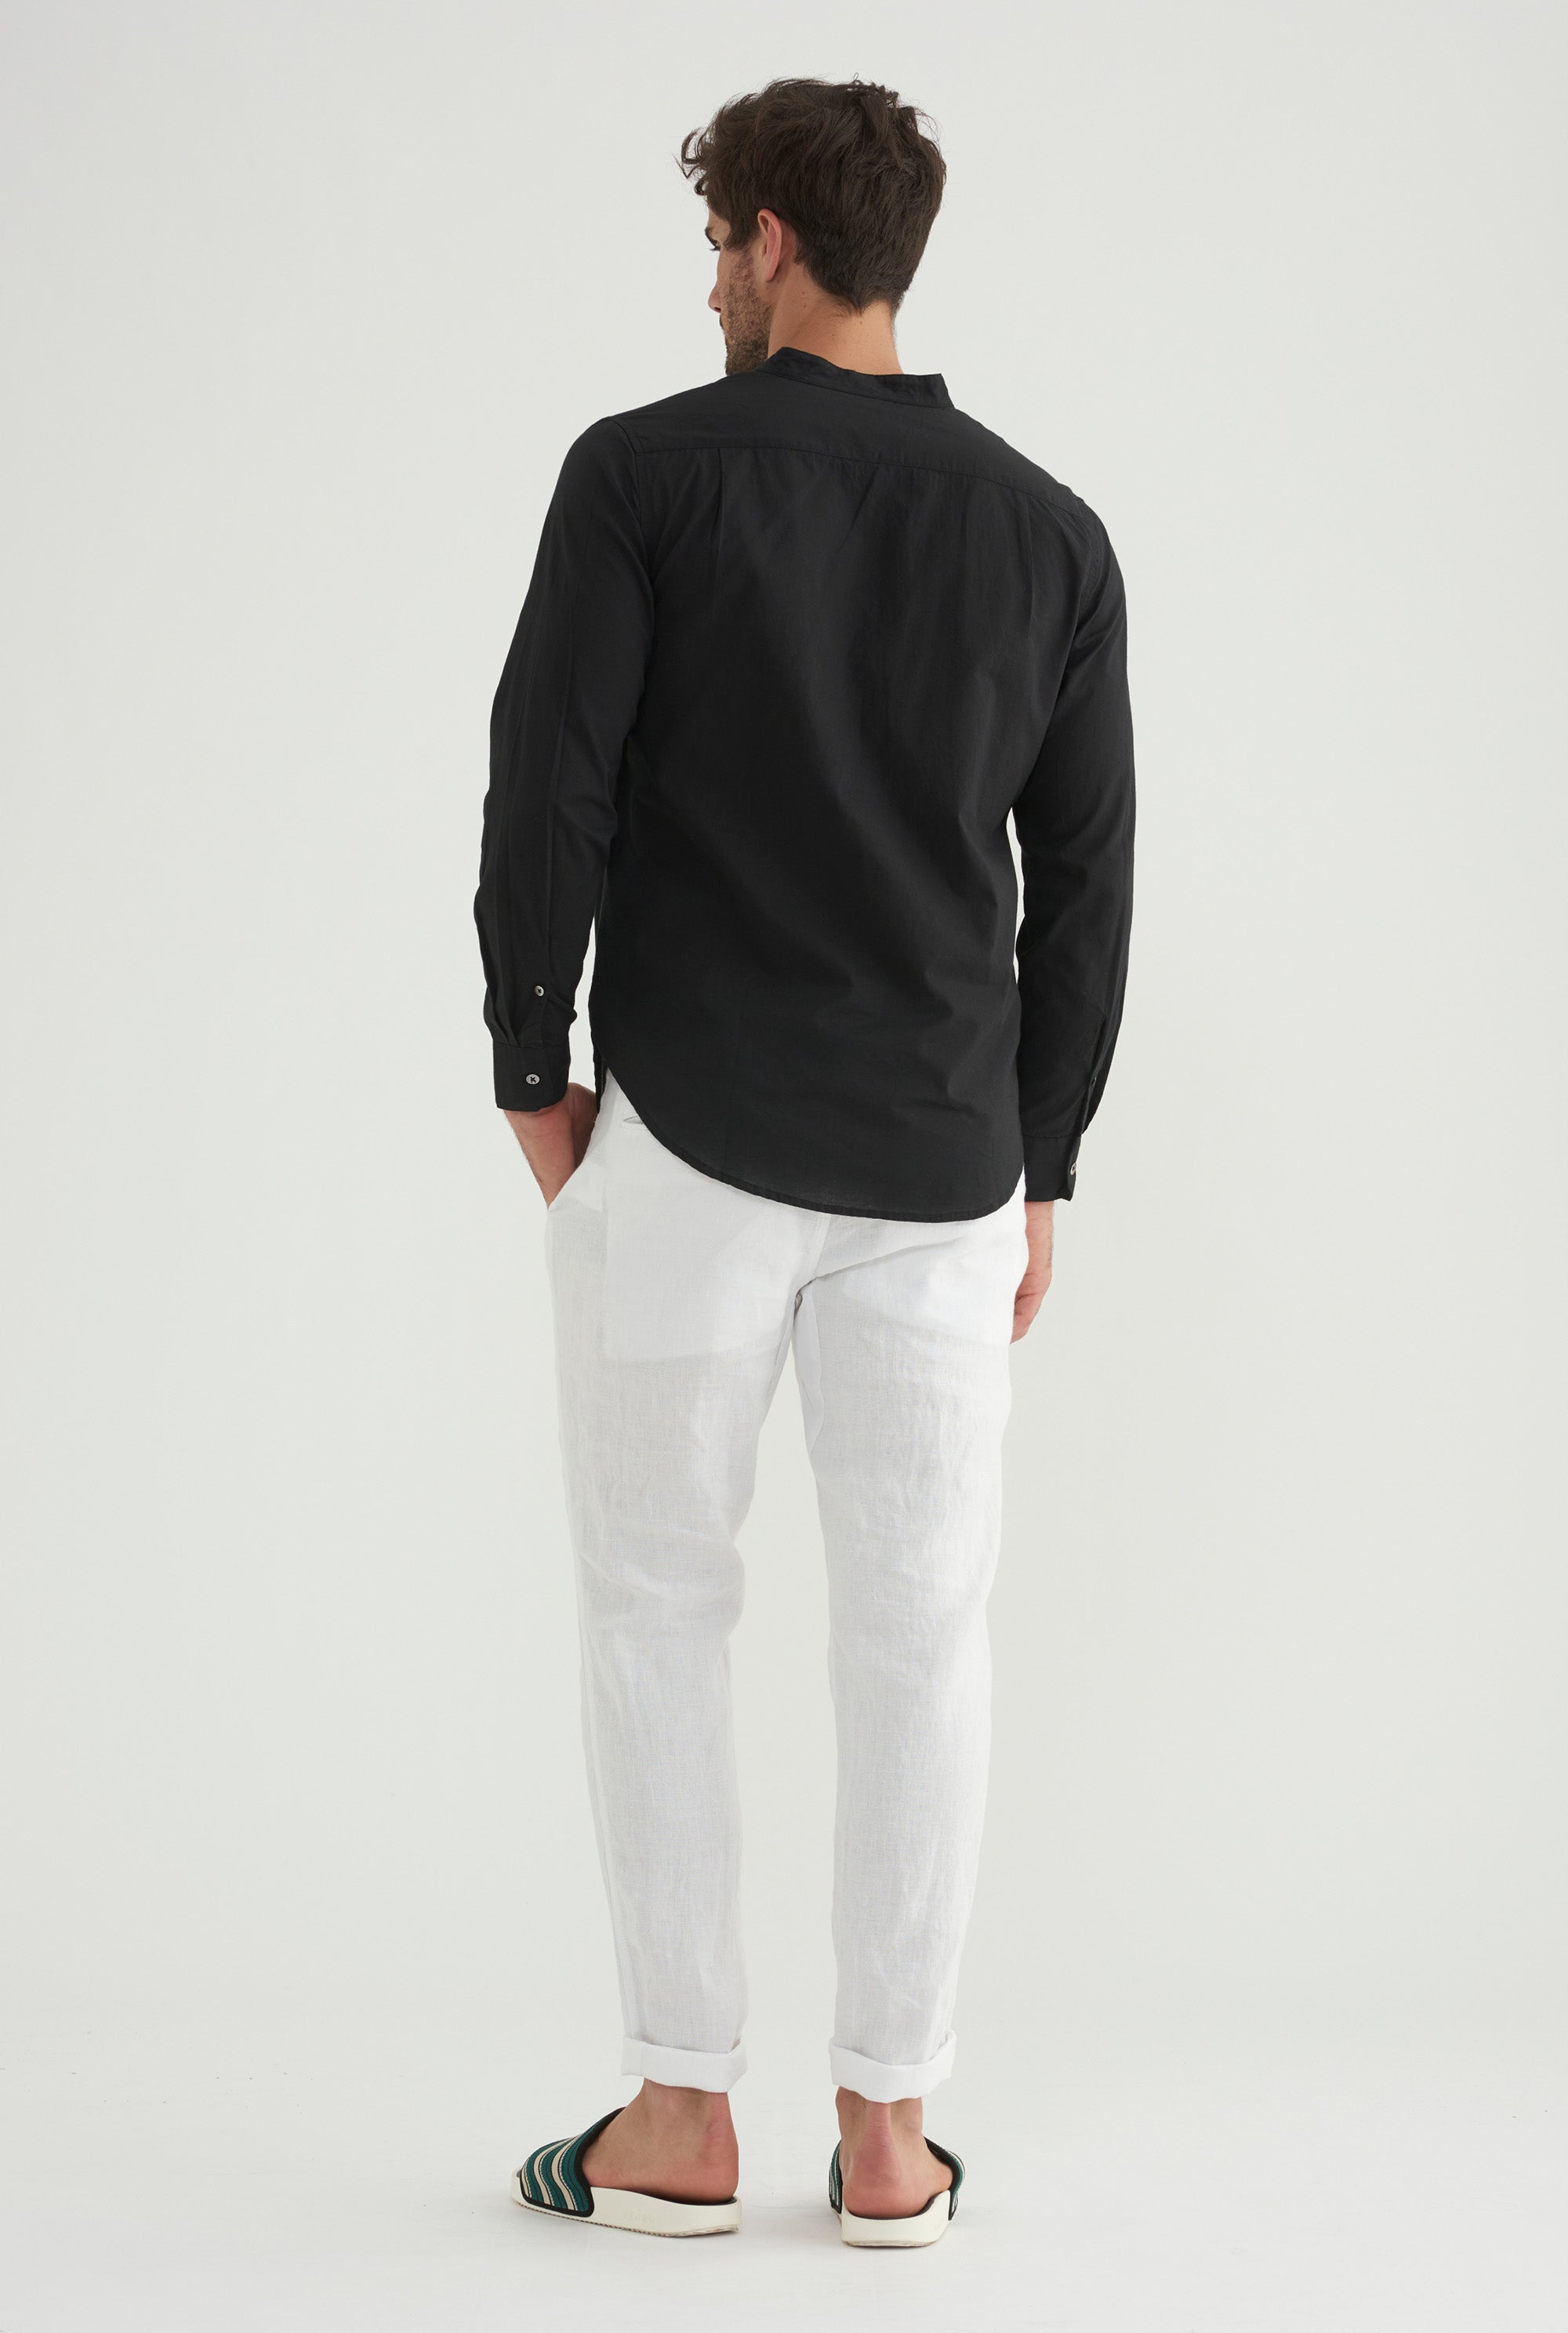 Poplin Pop Over Shirt - Black